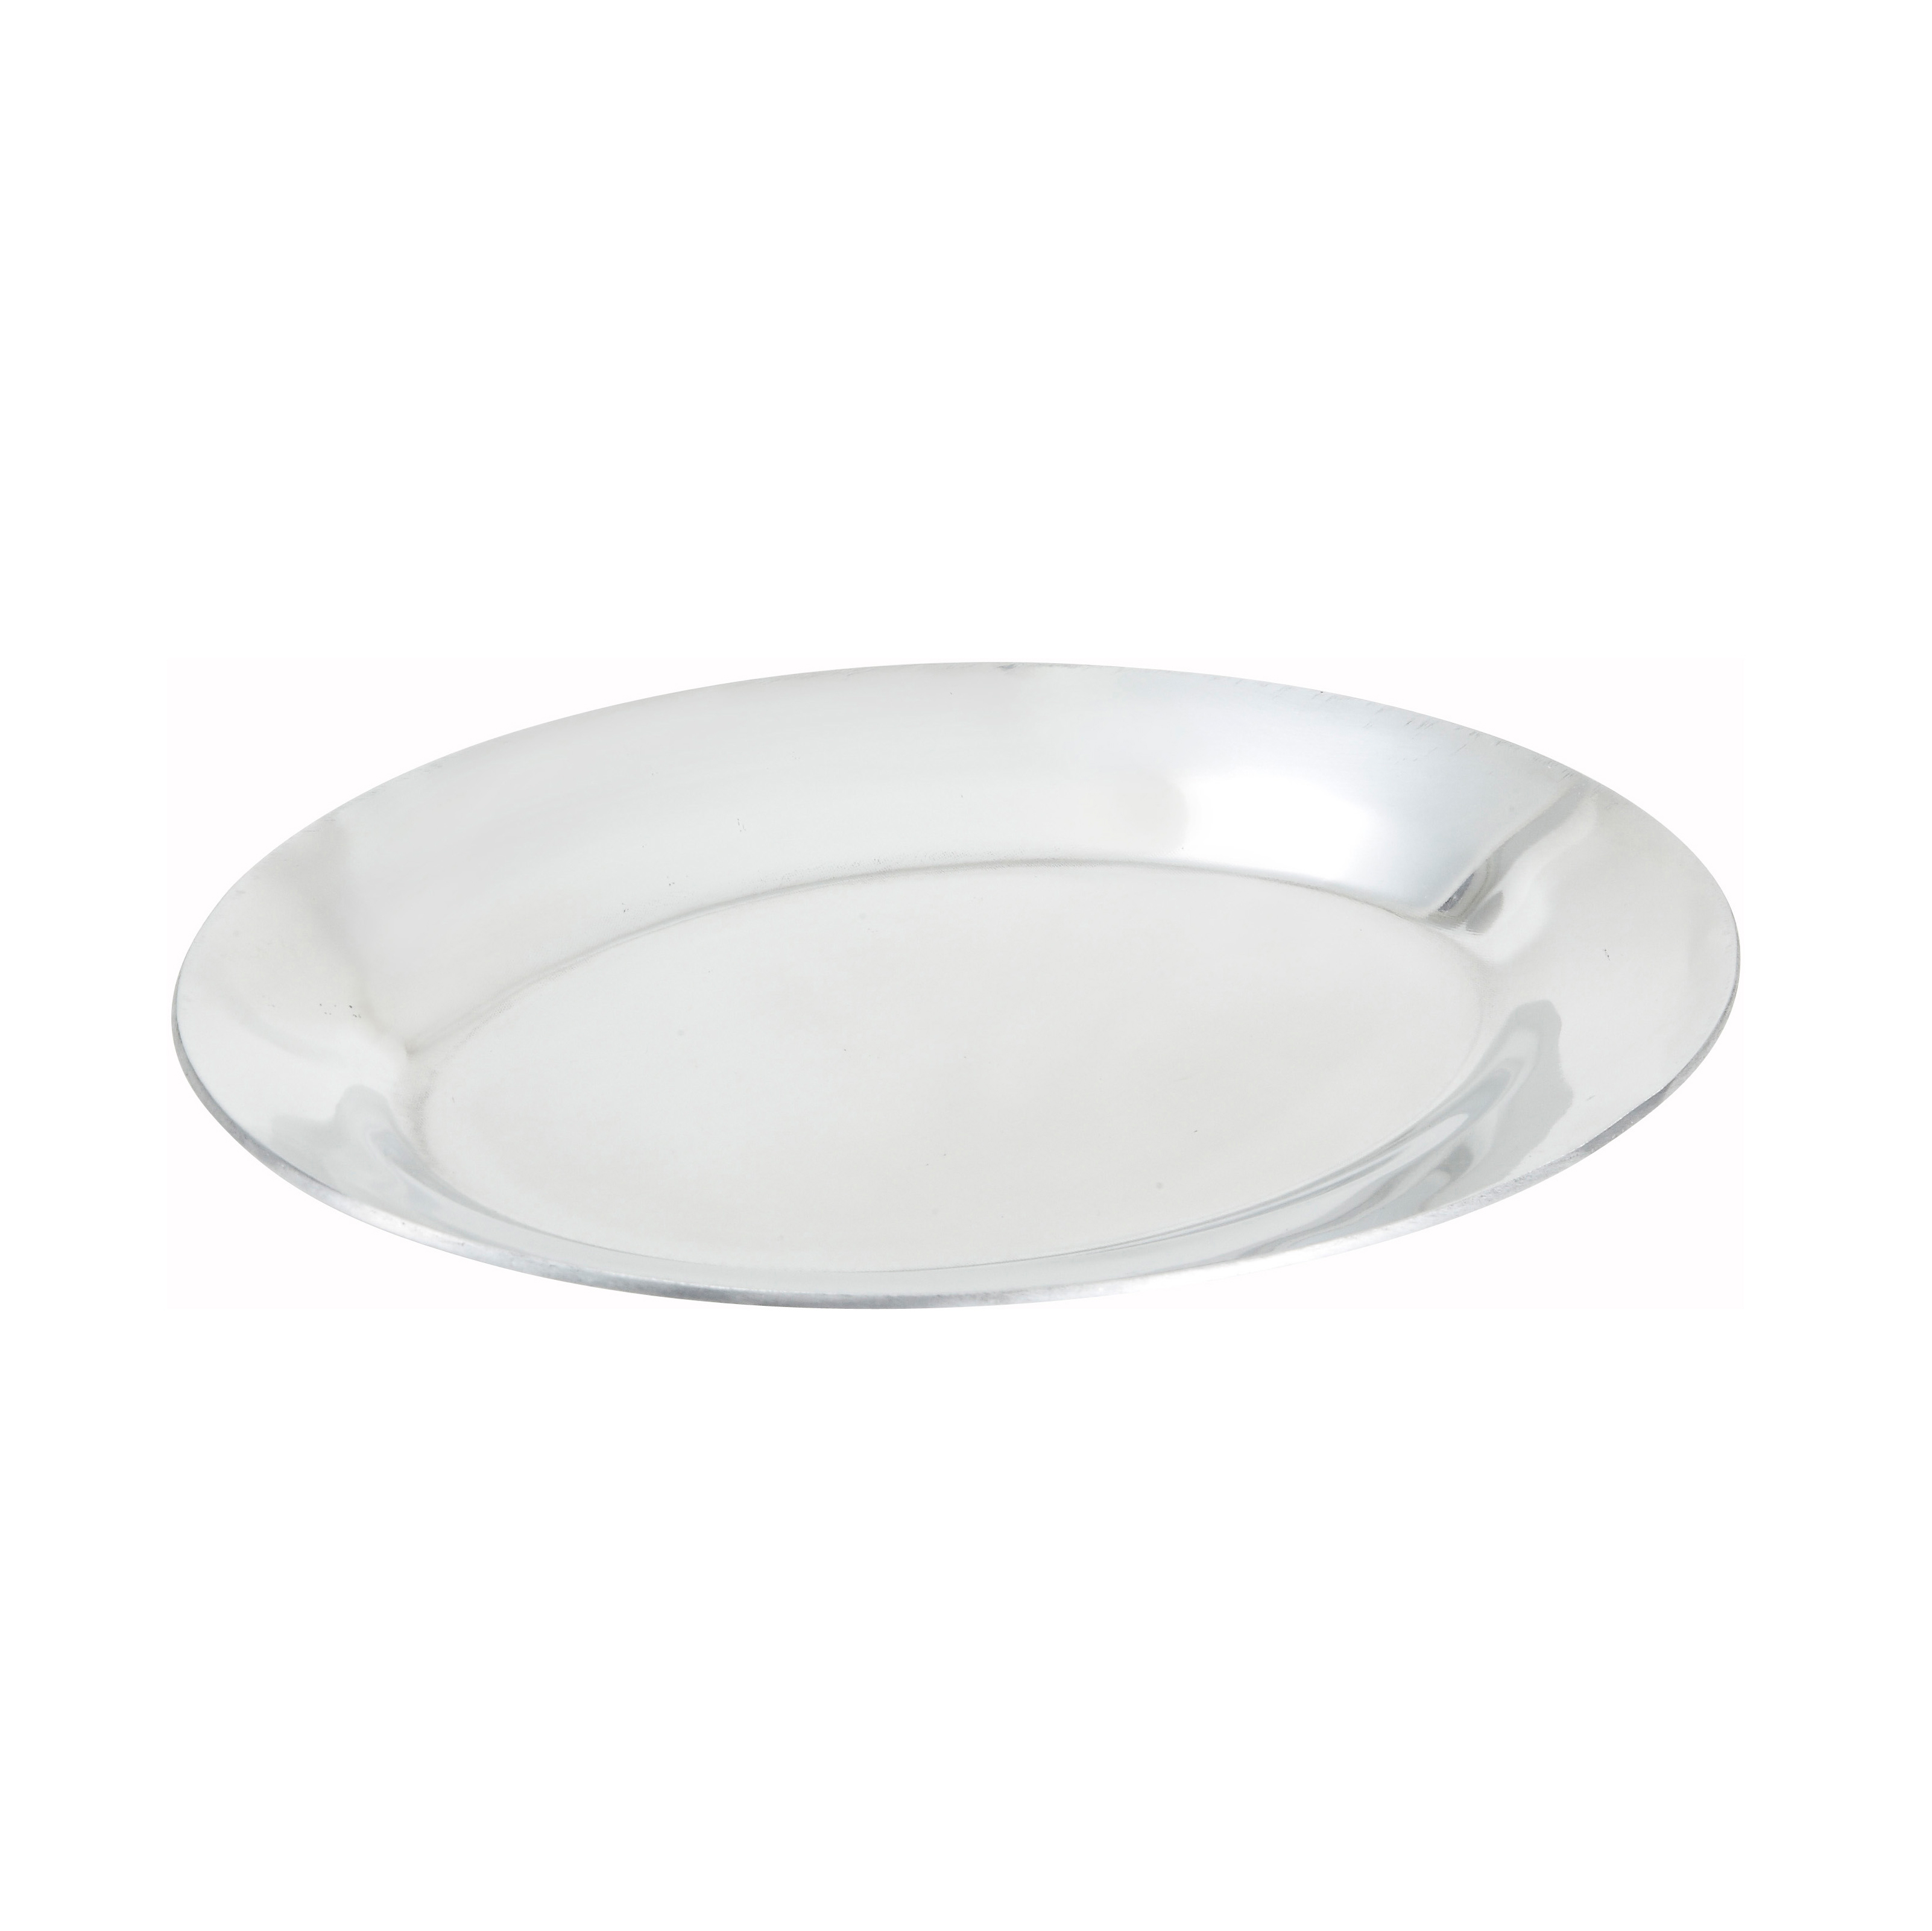 1150-651 Winco APL-10 sizzle thermal platter